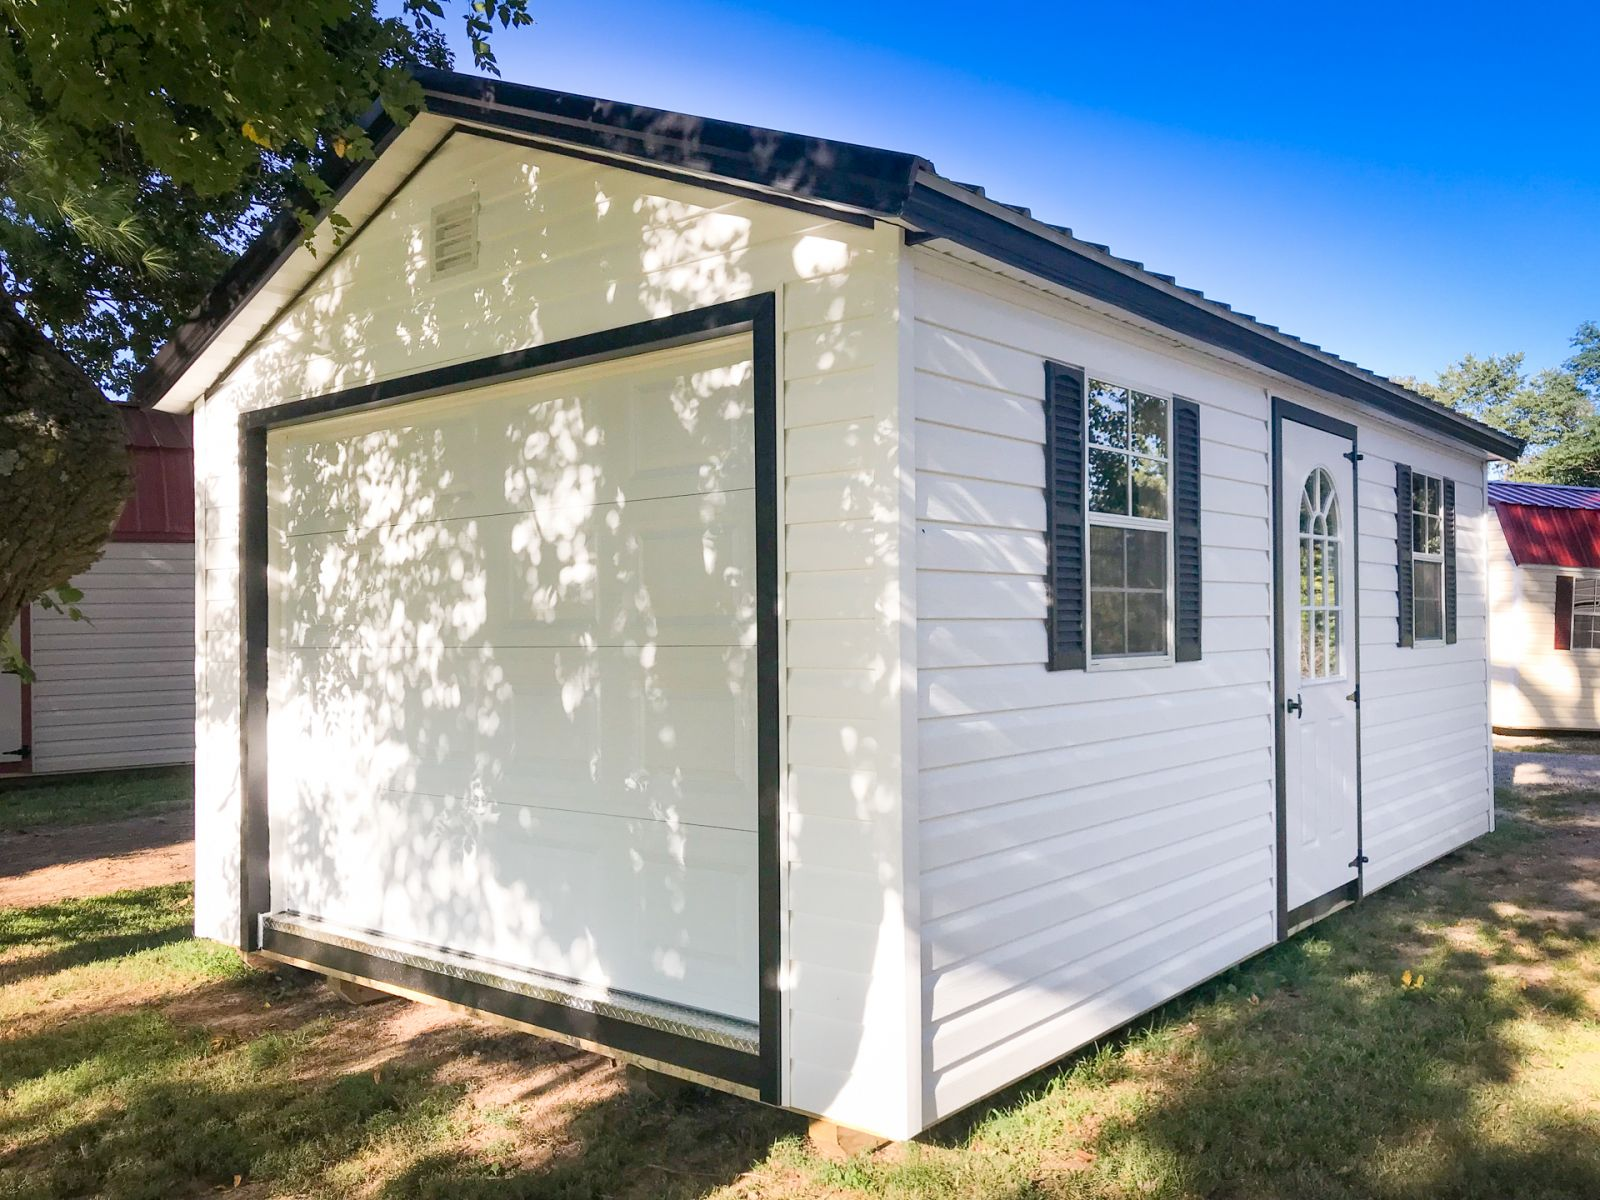 A portable garage shed for sale in Nashville, TN